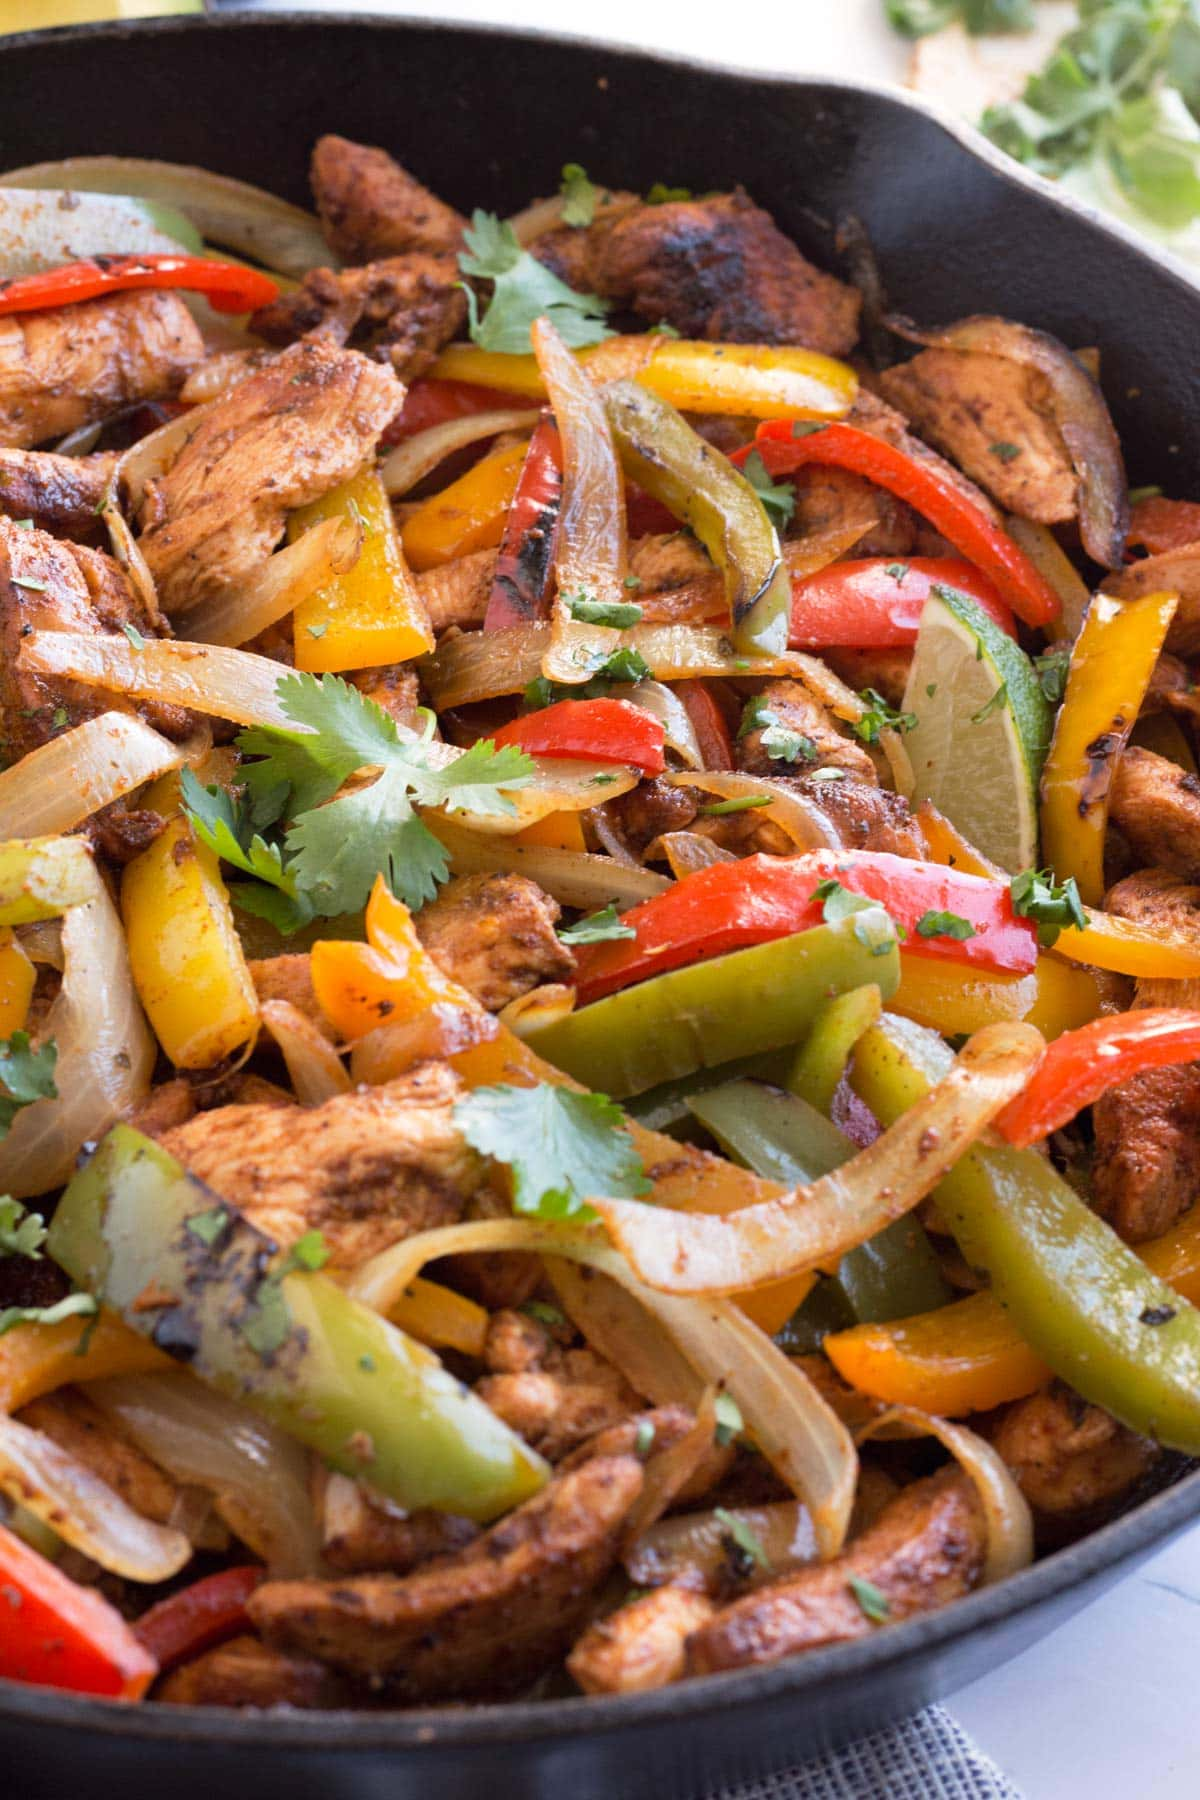 Sizzling fajita meat and vegetables in iron skillet.